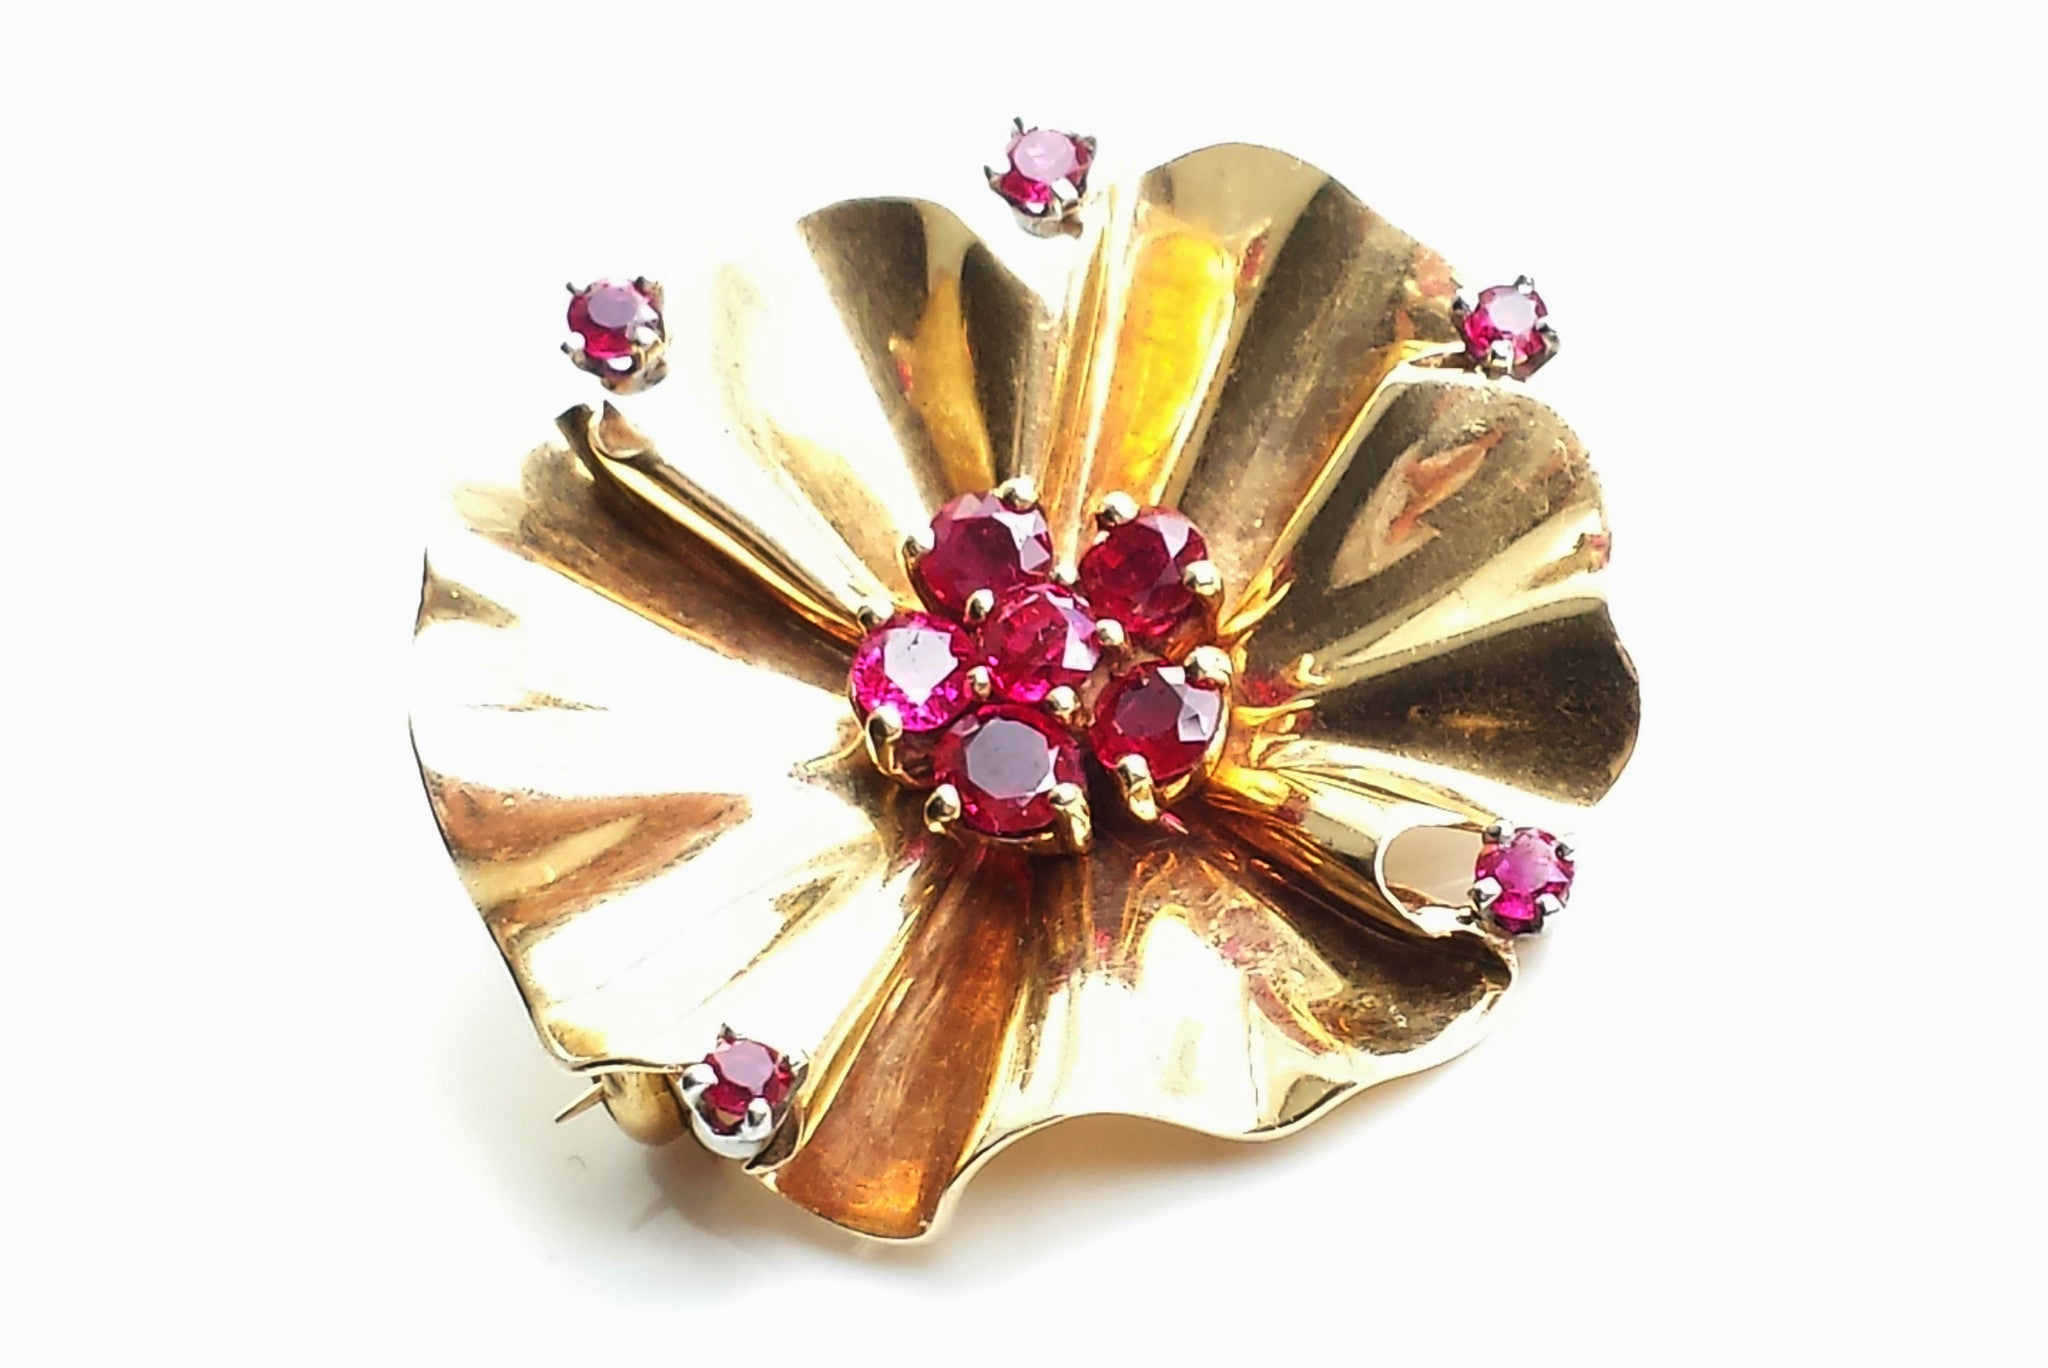 336f26c67fcb8 Rare Vintage Retro Tiffany & Co. Mid-century Modernist 1940s 14k Gold &  Ruby Flower Brooch